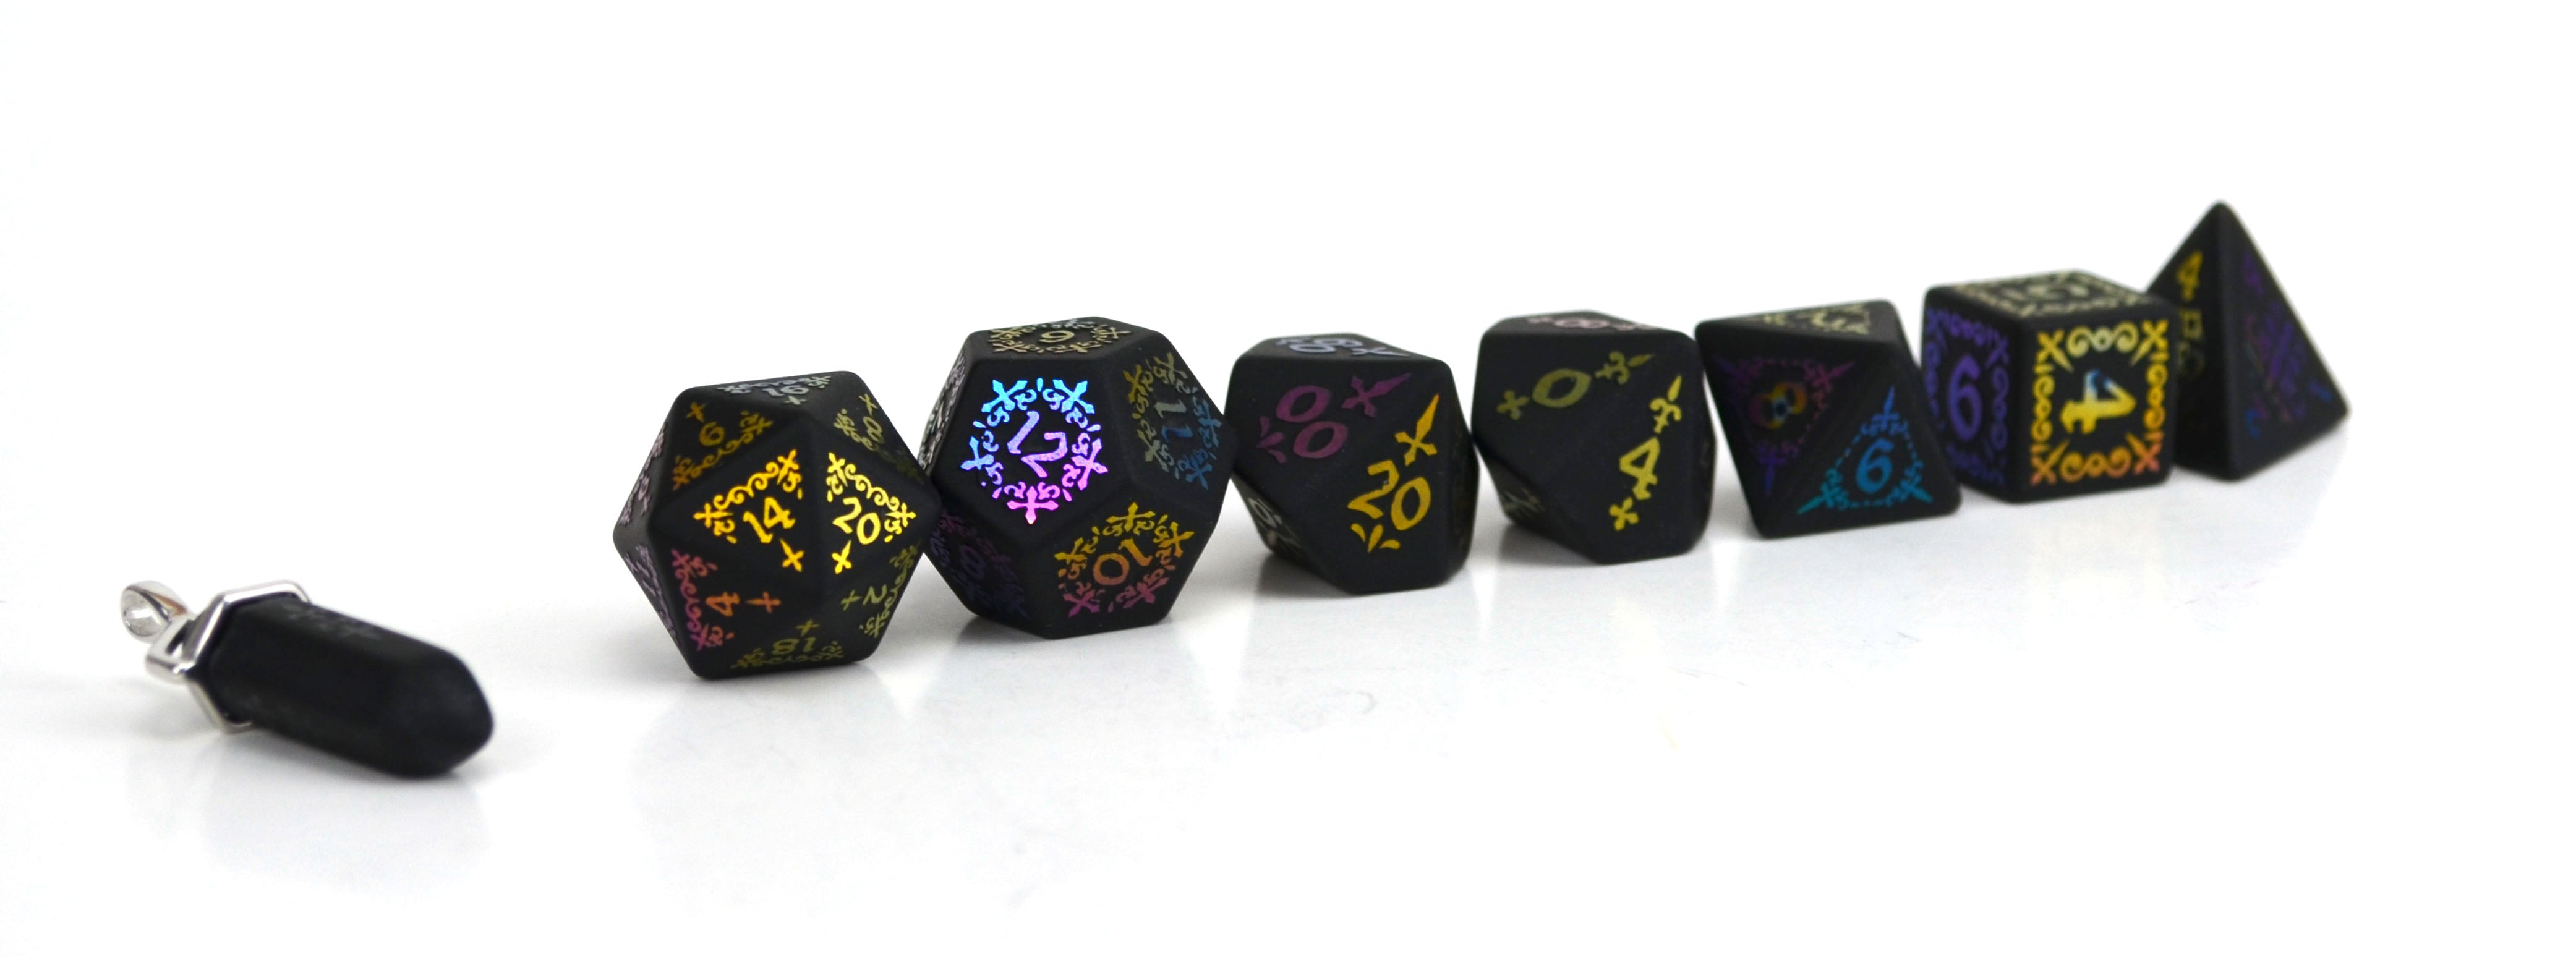 Ionized Shadow Masque Raised Obsidian Semi Precious Stone Dice Set